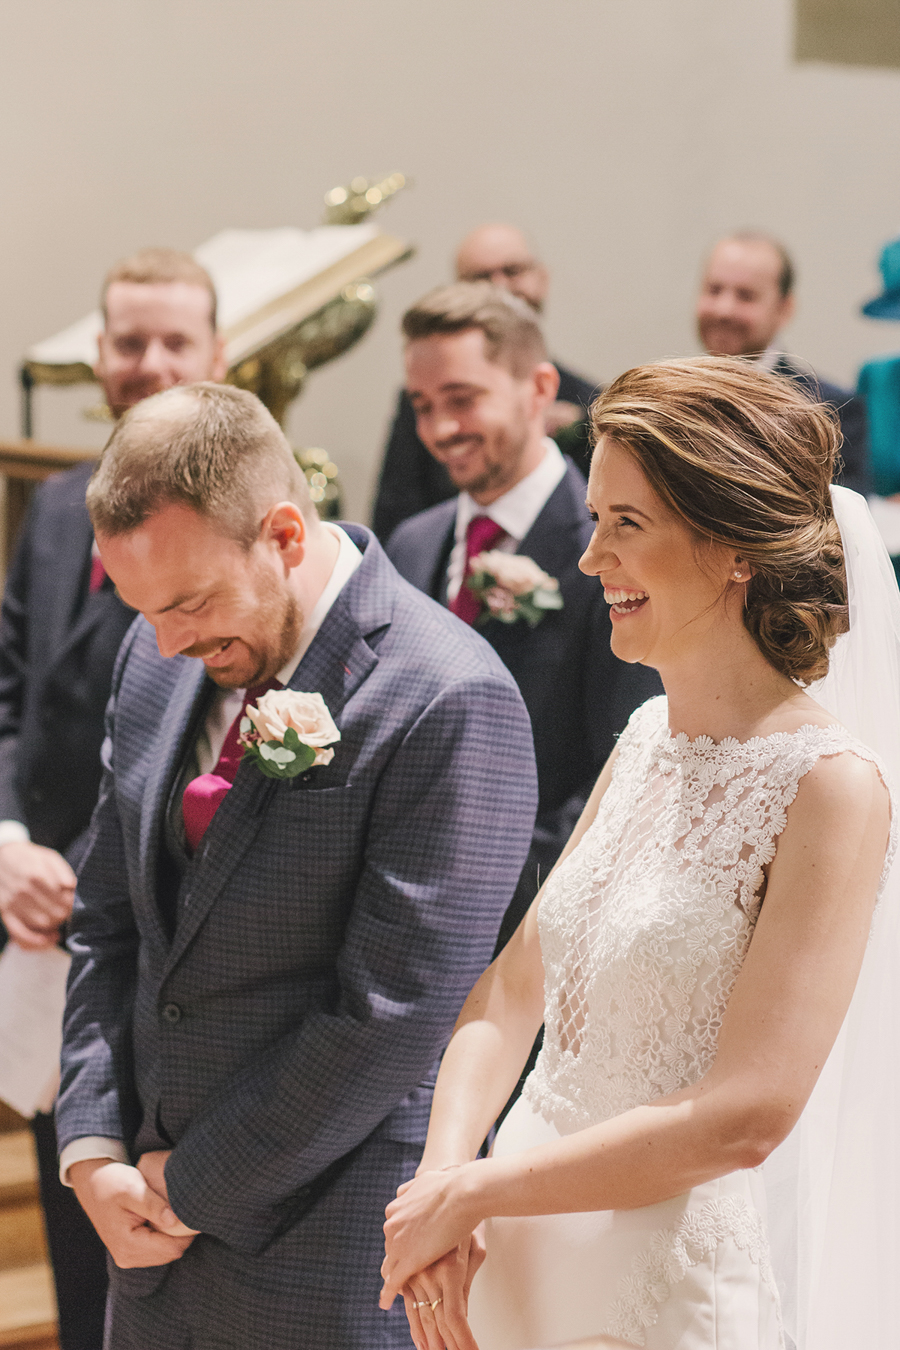 A beautiful quintessentially English wedding in Helmsley with images by Lissa Alexandra Photography (10)